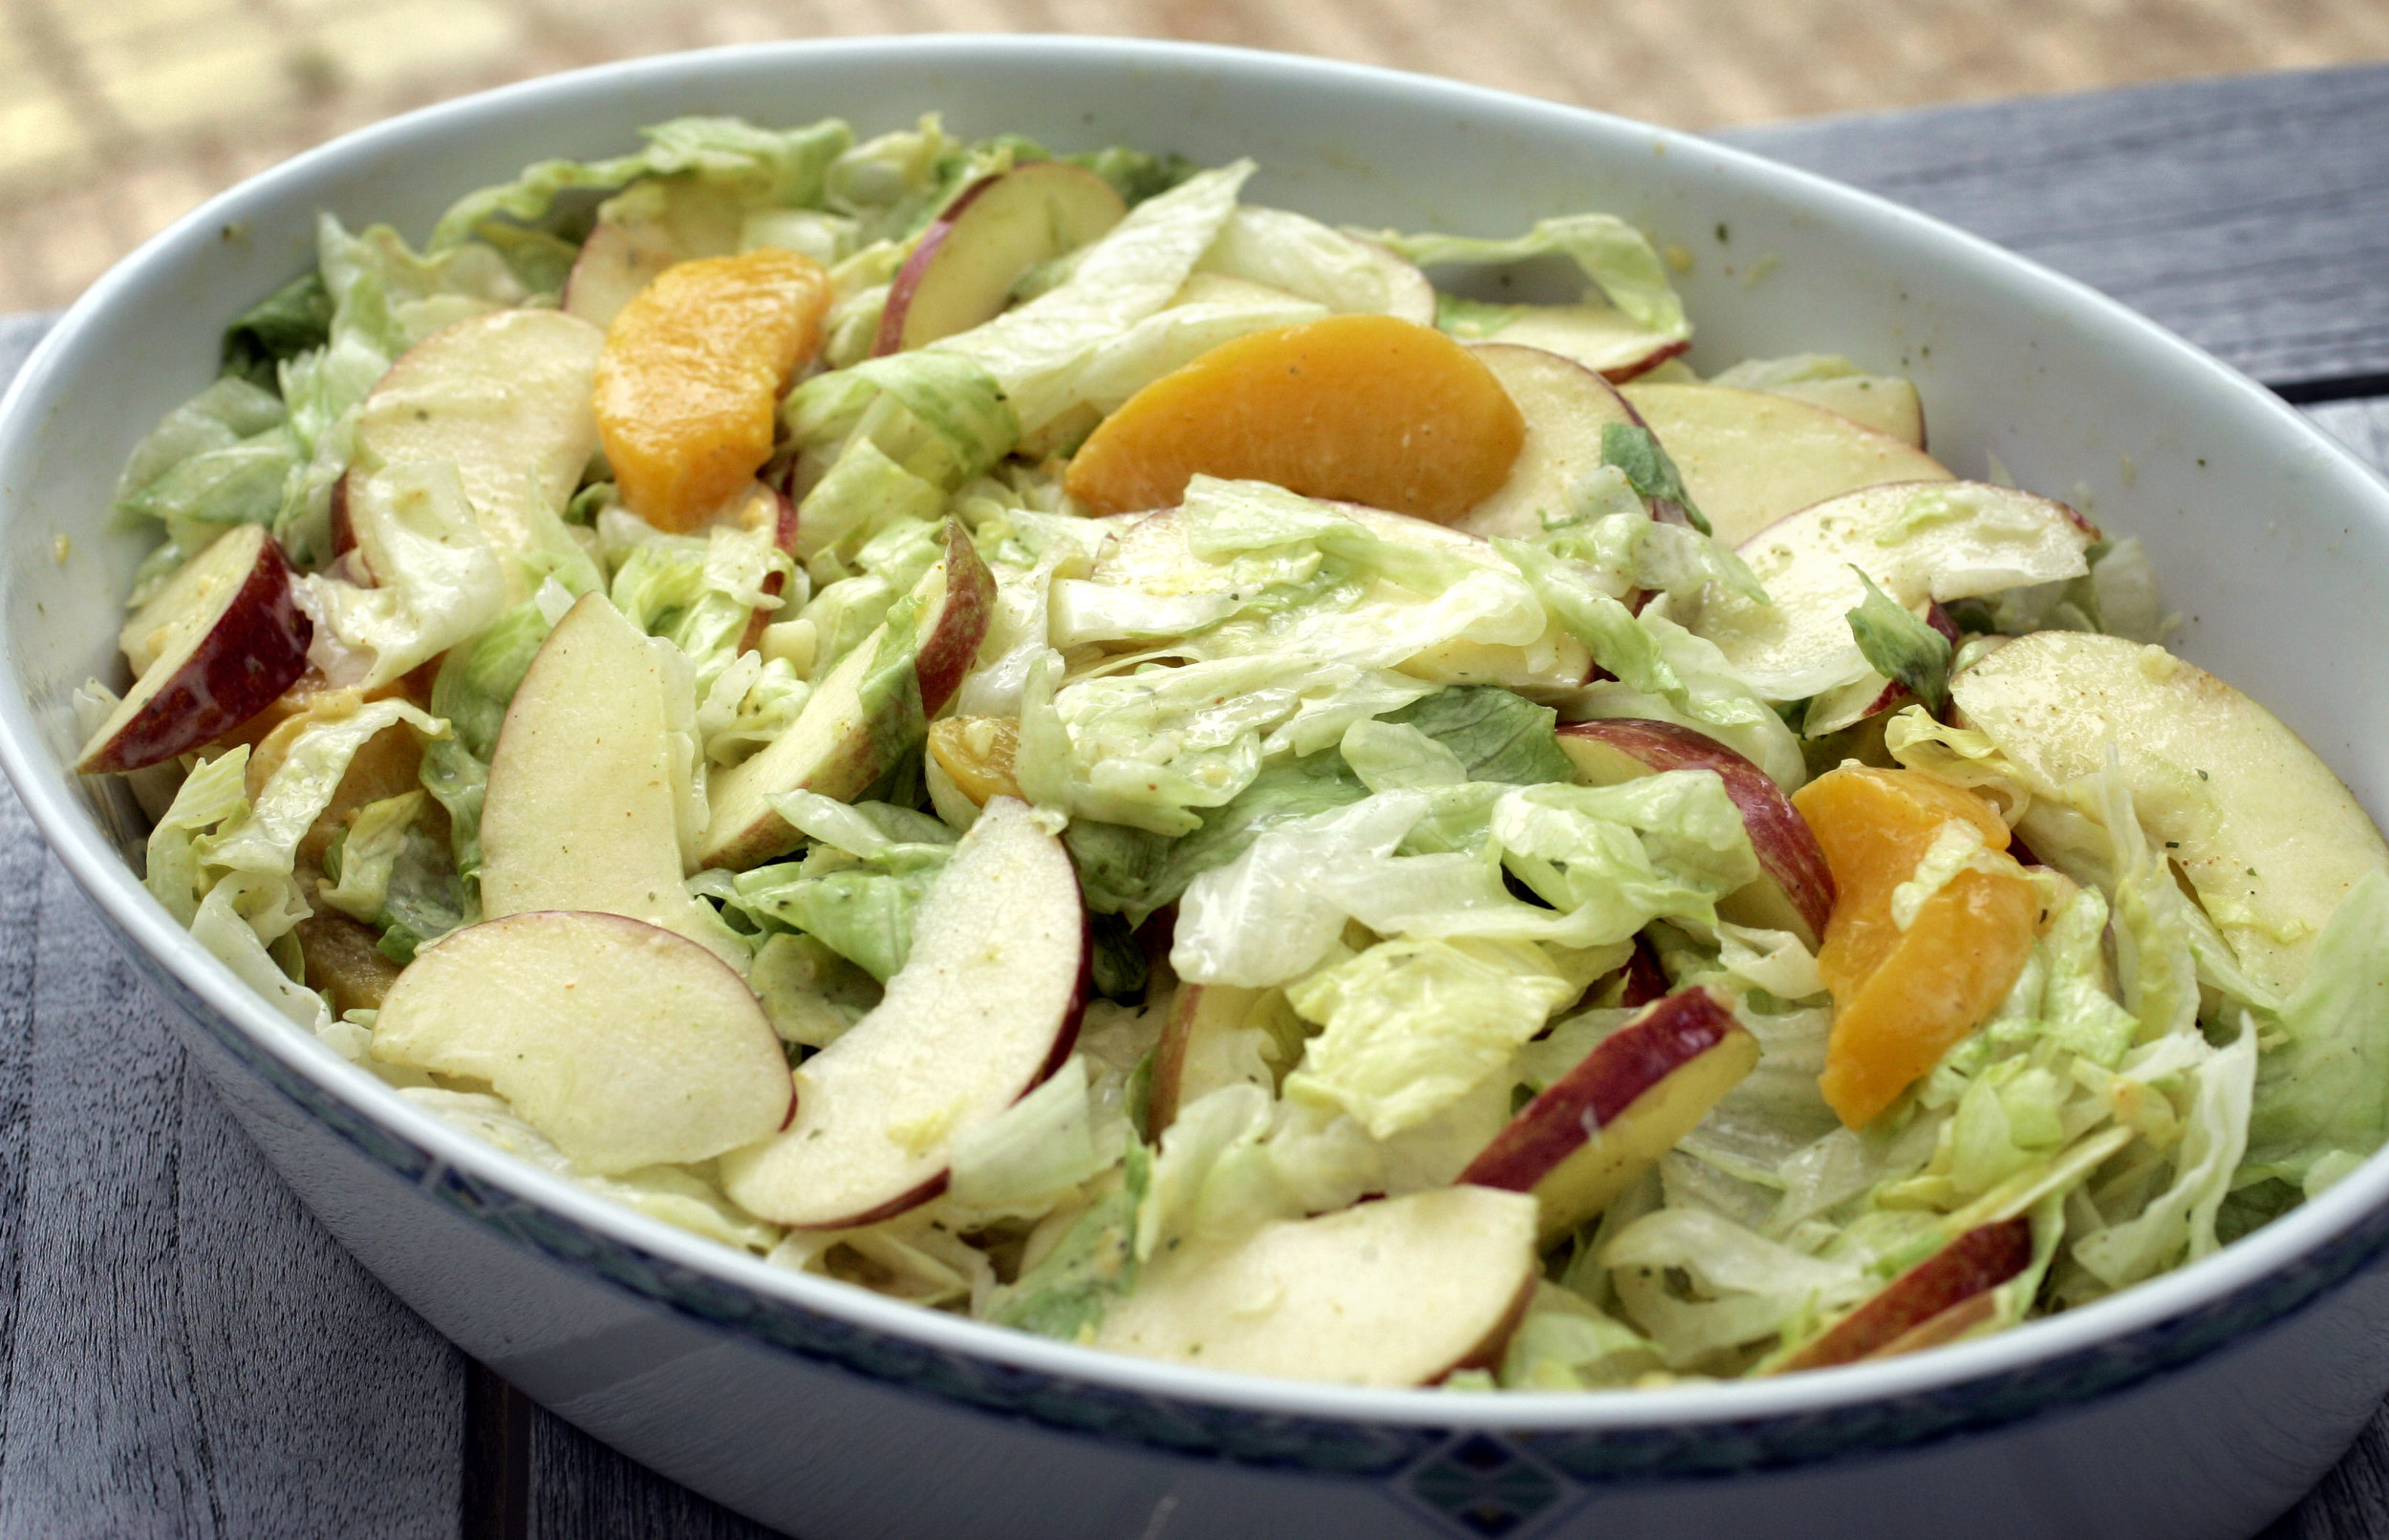 salade groente vegetable fruit appel apple sla lettuce